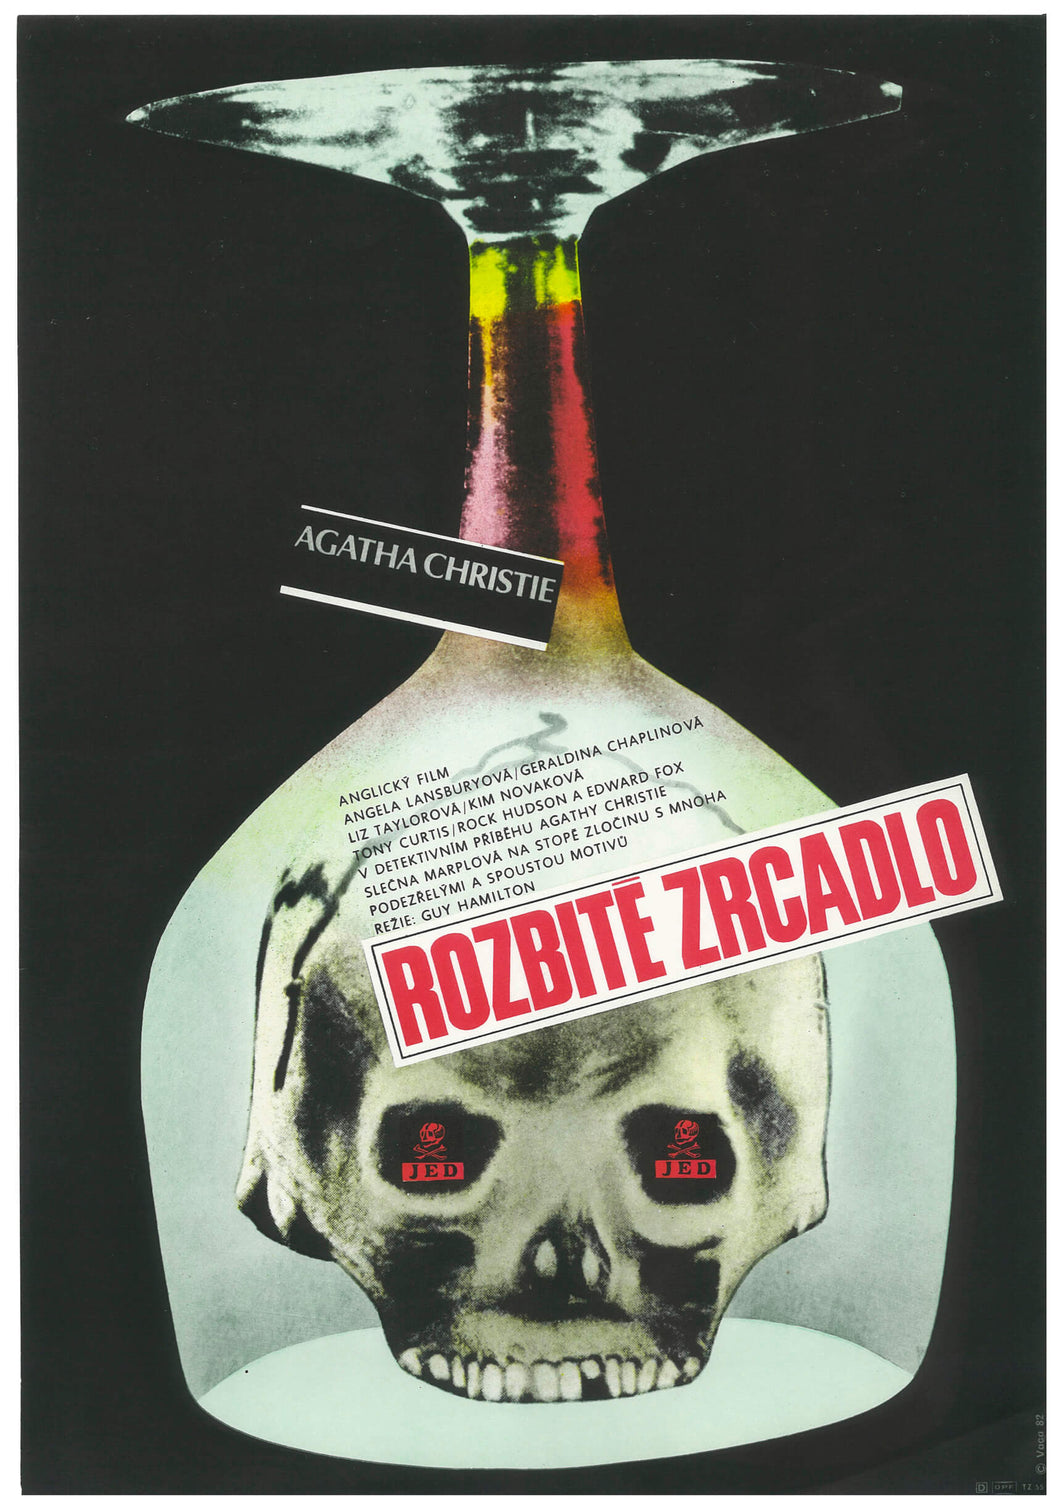 MIRROR CRACK'D | Agatha Christie | Czech Film Poster